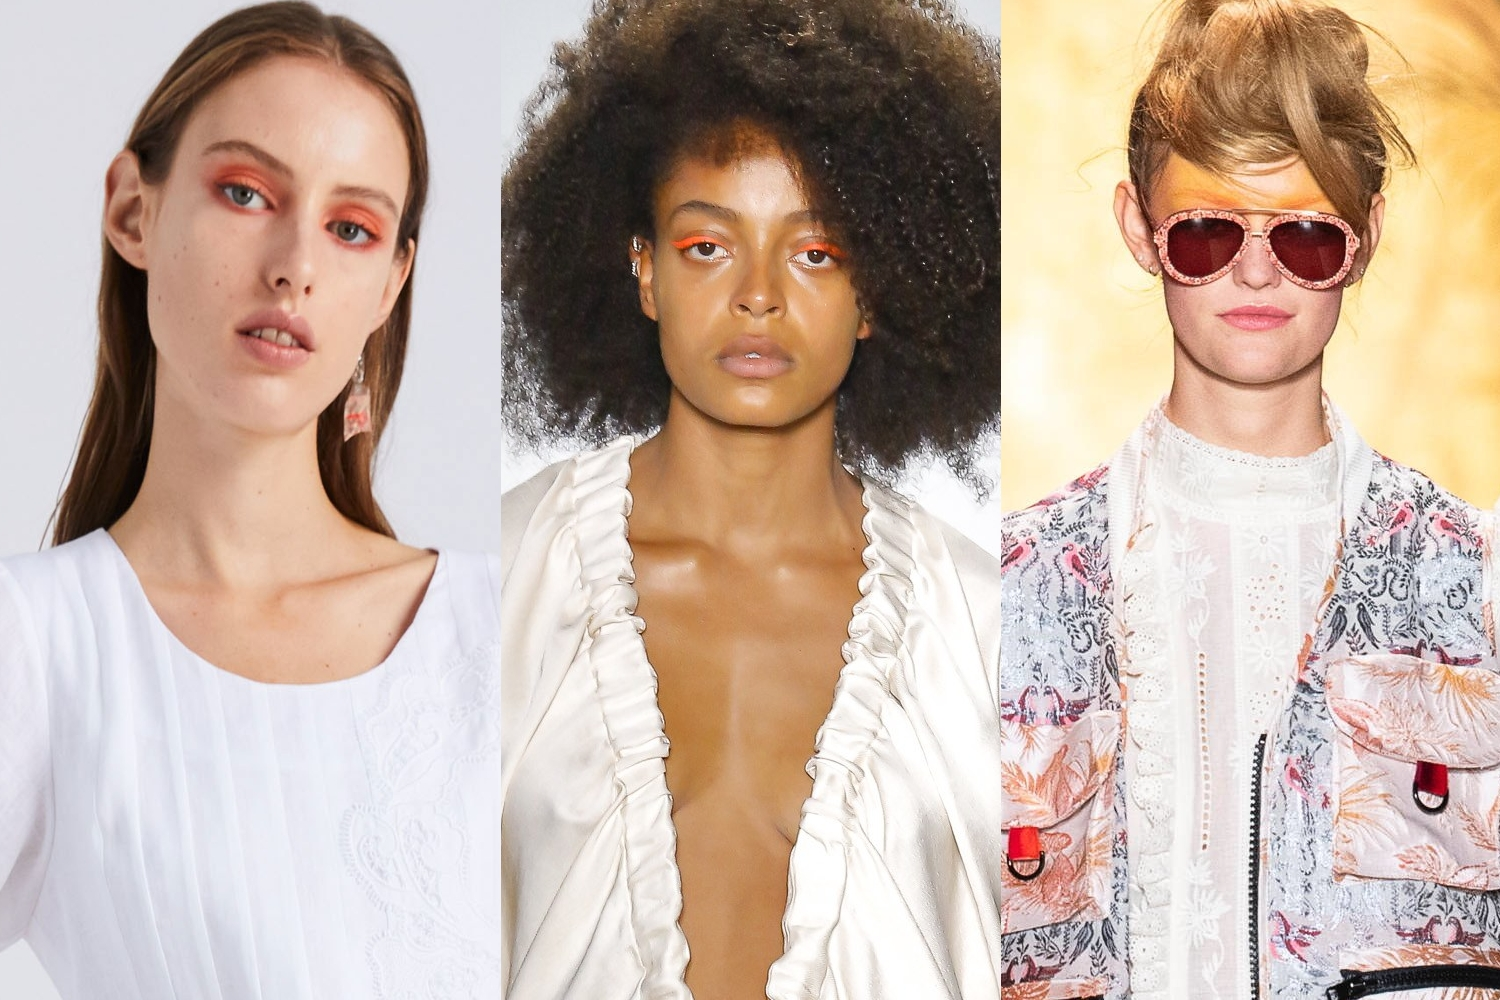 Makeup looks at Novis, Zero + Maria Cornejo, Anna Sui fashion runway shows